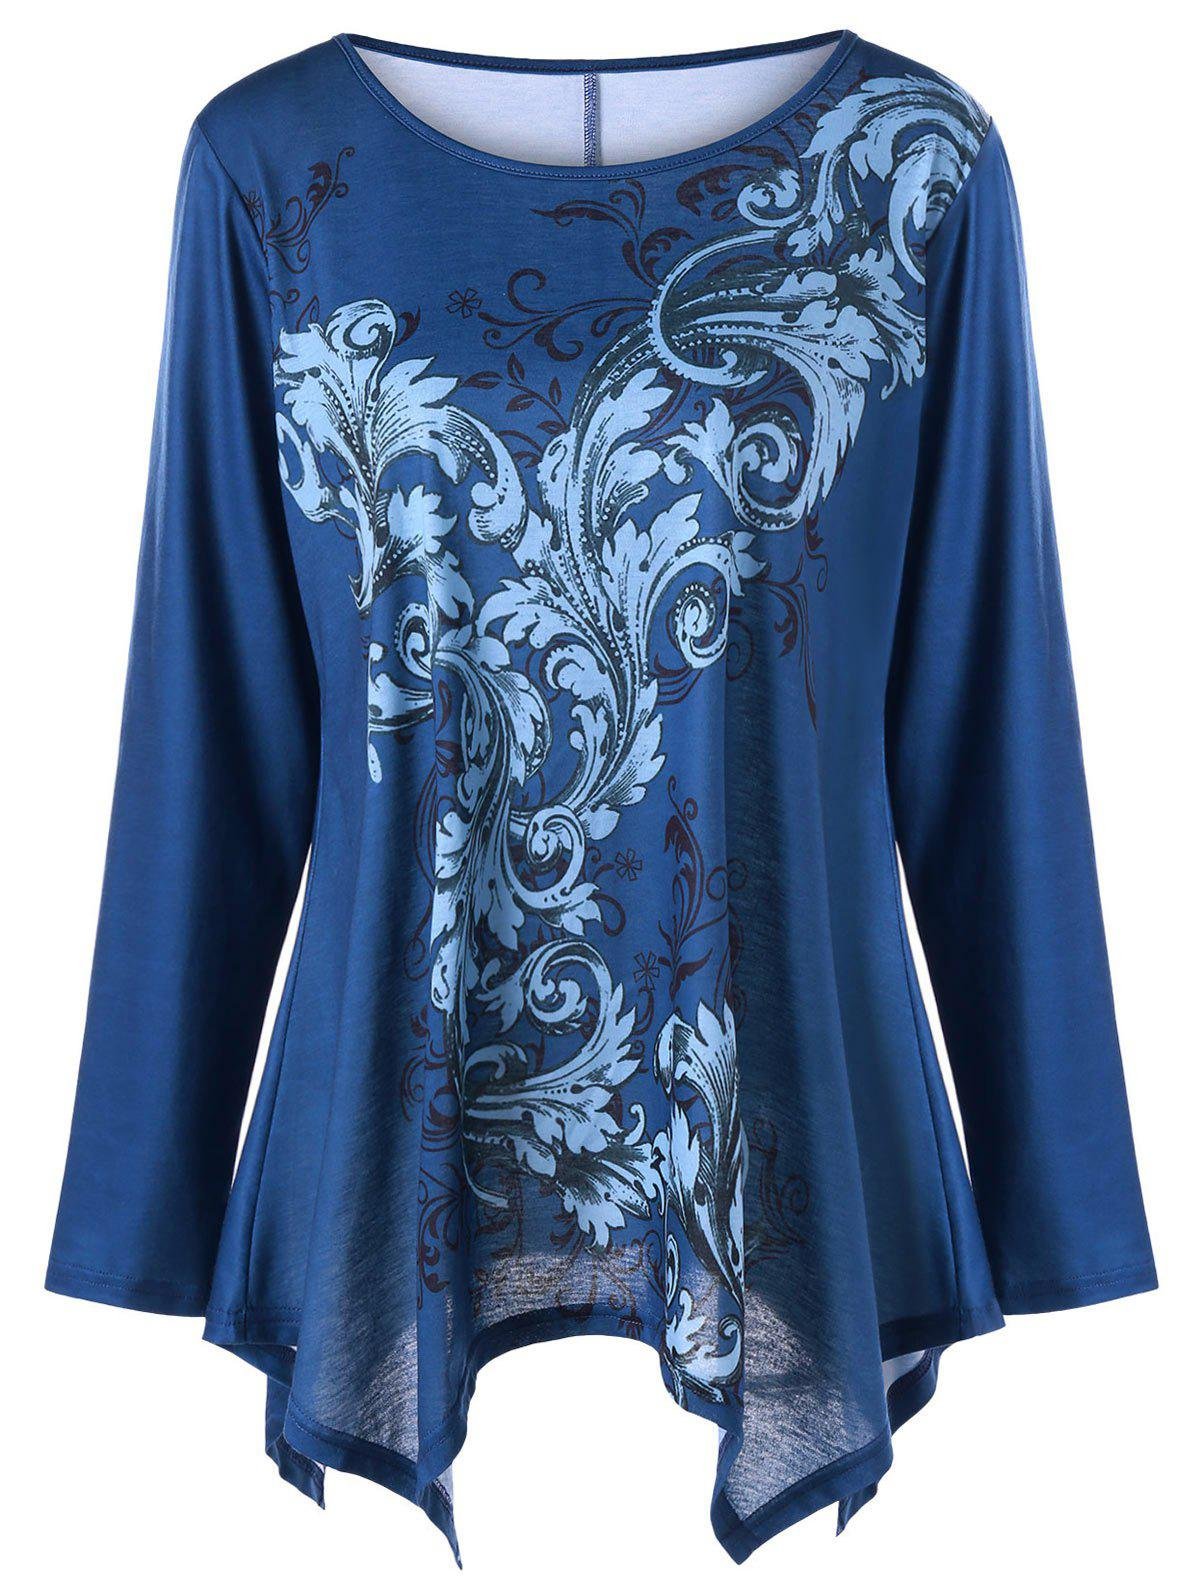 Plus Size Long Sleeve Floral Print Handkerchief TeeWOMEN<br><br>Size: 4XL; Color: BLUE; Material: Cotton,Polyester; Shirt Length: Regular; Sleeve Length: Full; Collar: Round Neck; Style: Casual; Season: Fall,Spring; Pattern Type: Floral; Weight: 0.3000kg; Package Contents: 1 x T-shirt;